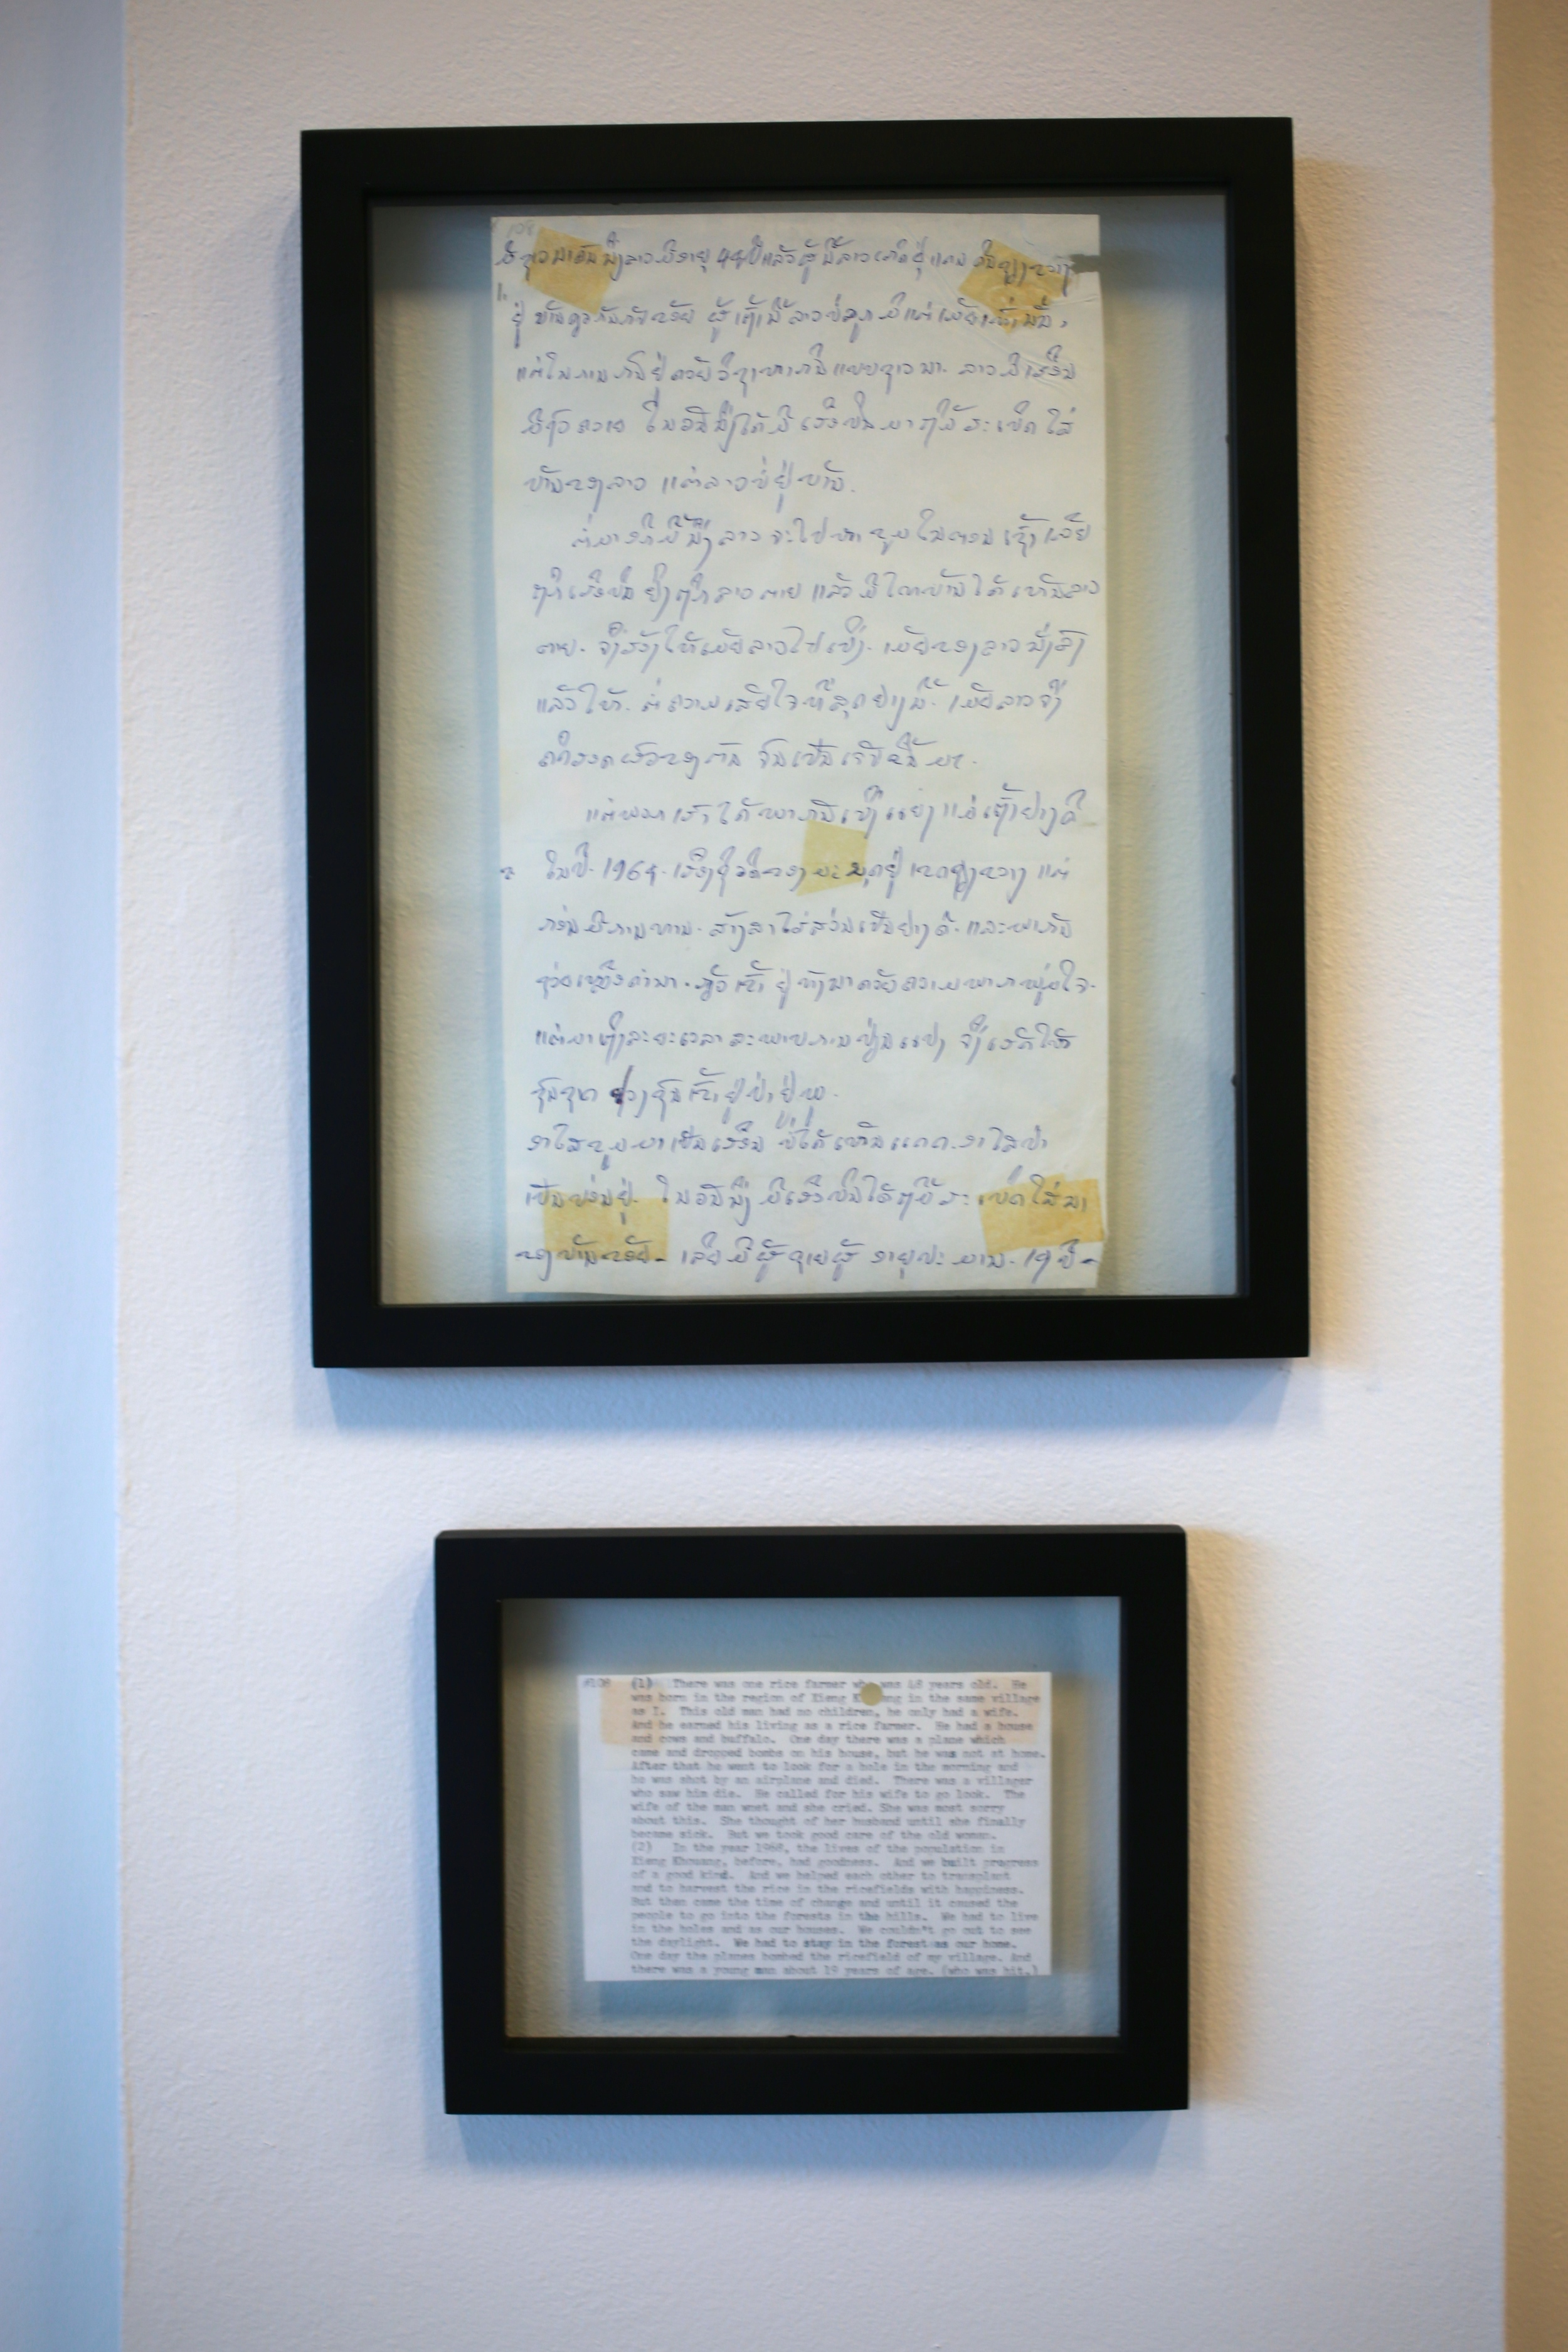 Hand-written testimonies of the Secret War bombings by Lao villagers, on loan courtesy of Legacies of War